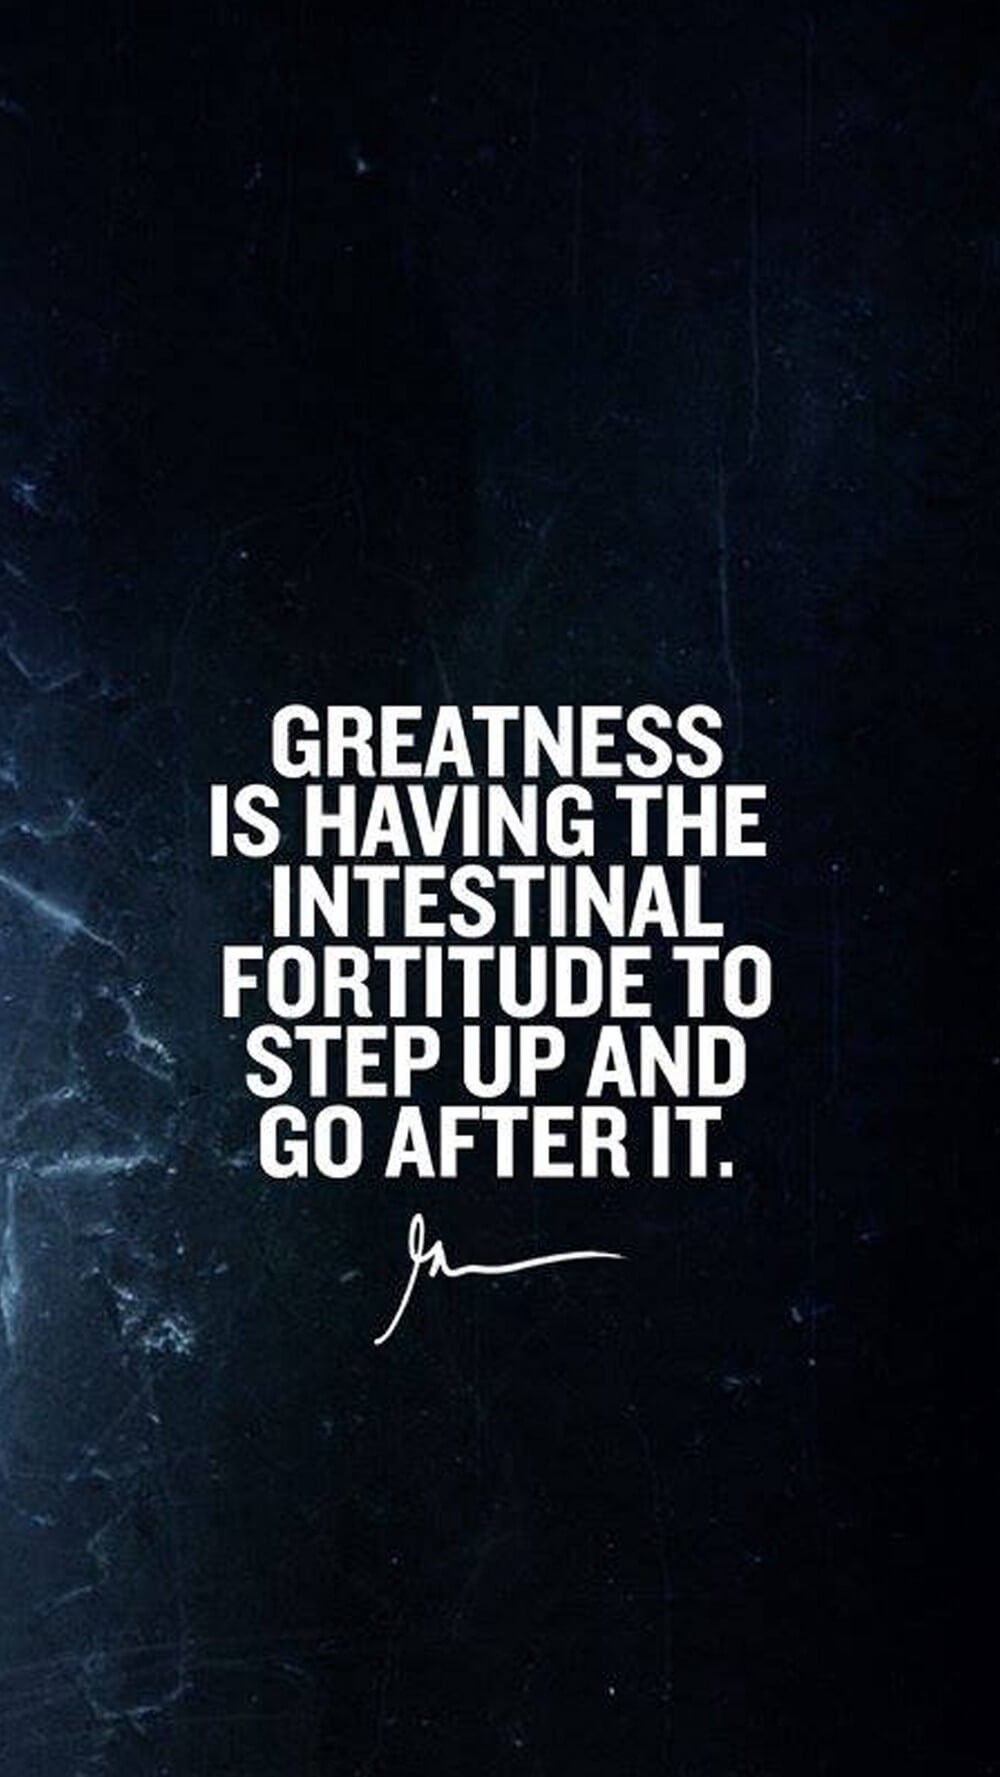 Greatness Is Having The Intestinal Fortitude To Step Up And Go After It